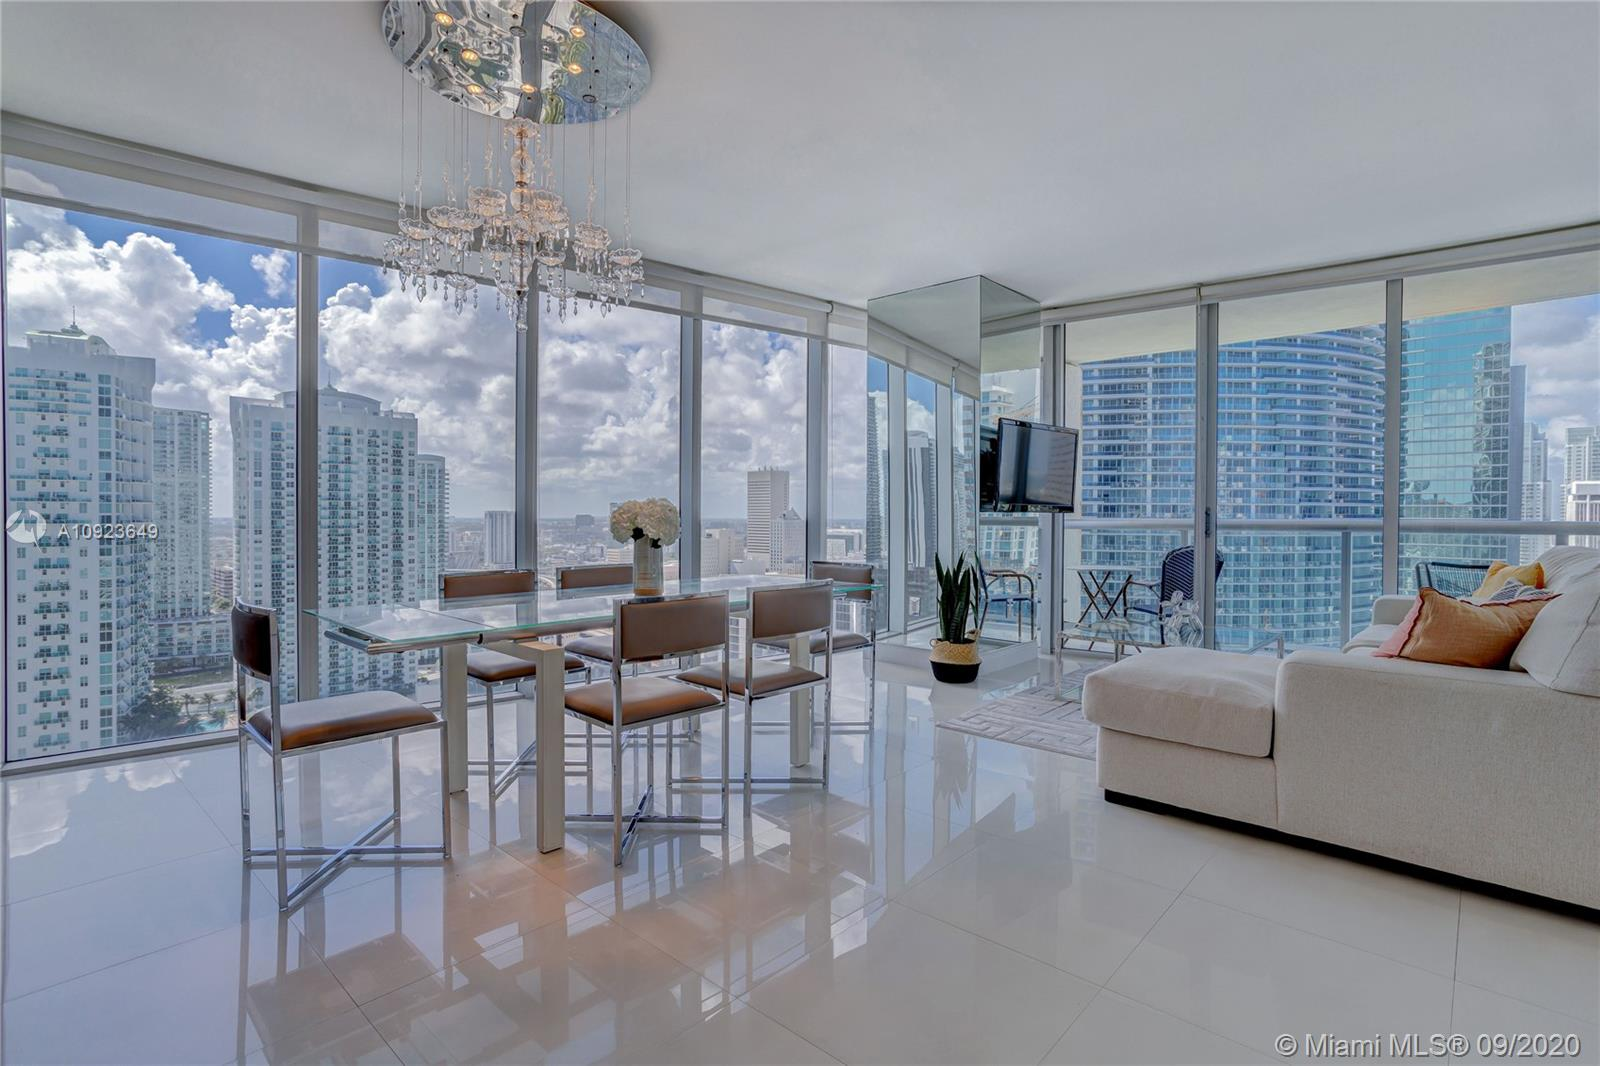 Icon Brickell 1 #3015 - 475 Brickell Ave #3015, Miami, FL 33131